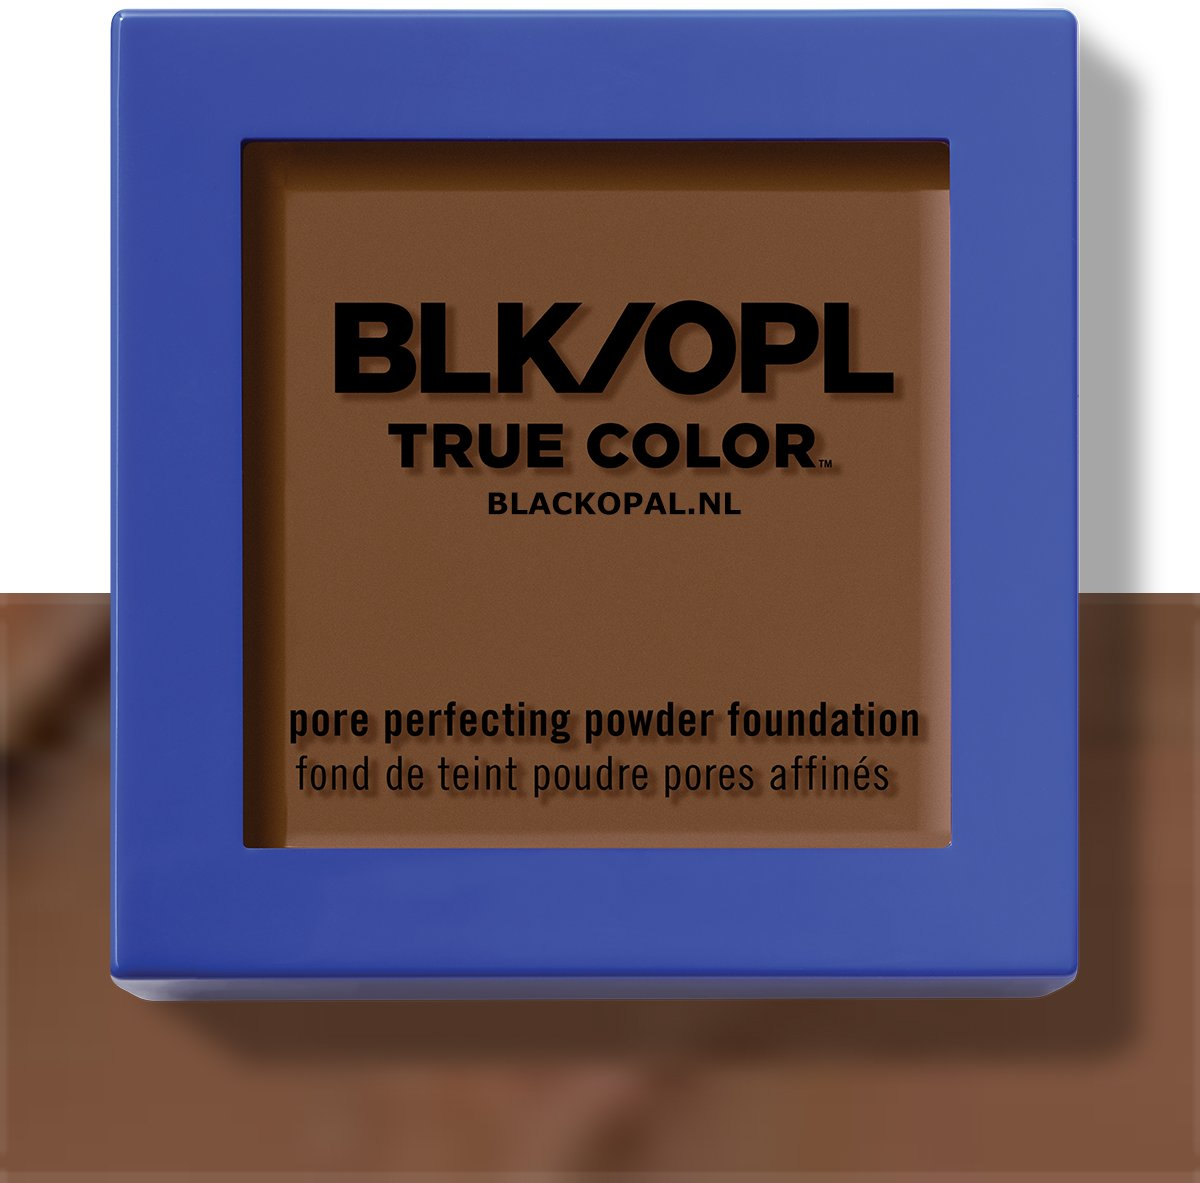 Black Opal True Color Pore Perfecting Powder Foundation – Beautiful Bronze  (460) – met Shade ID